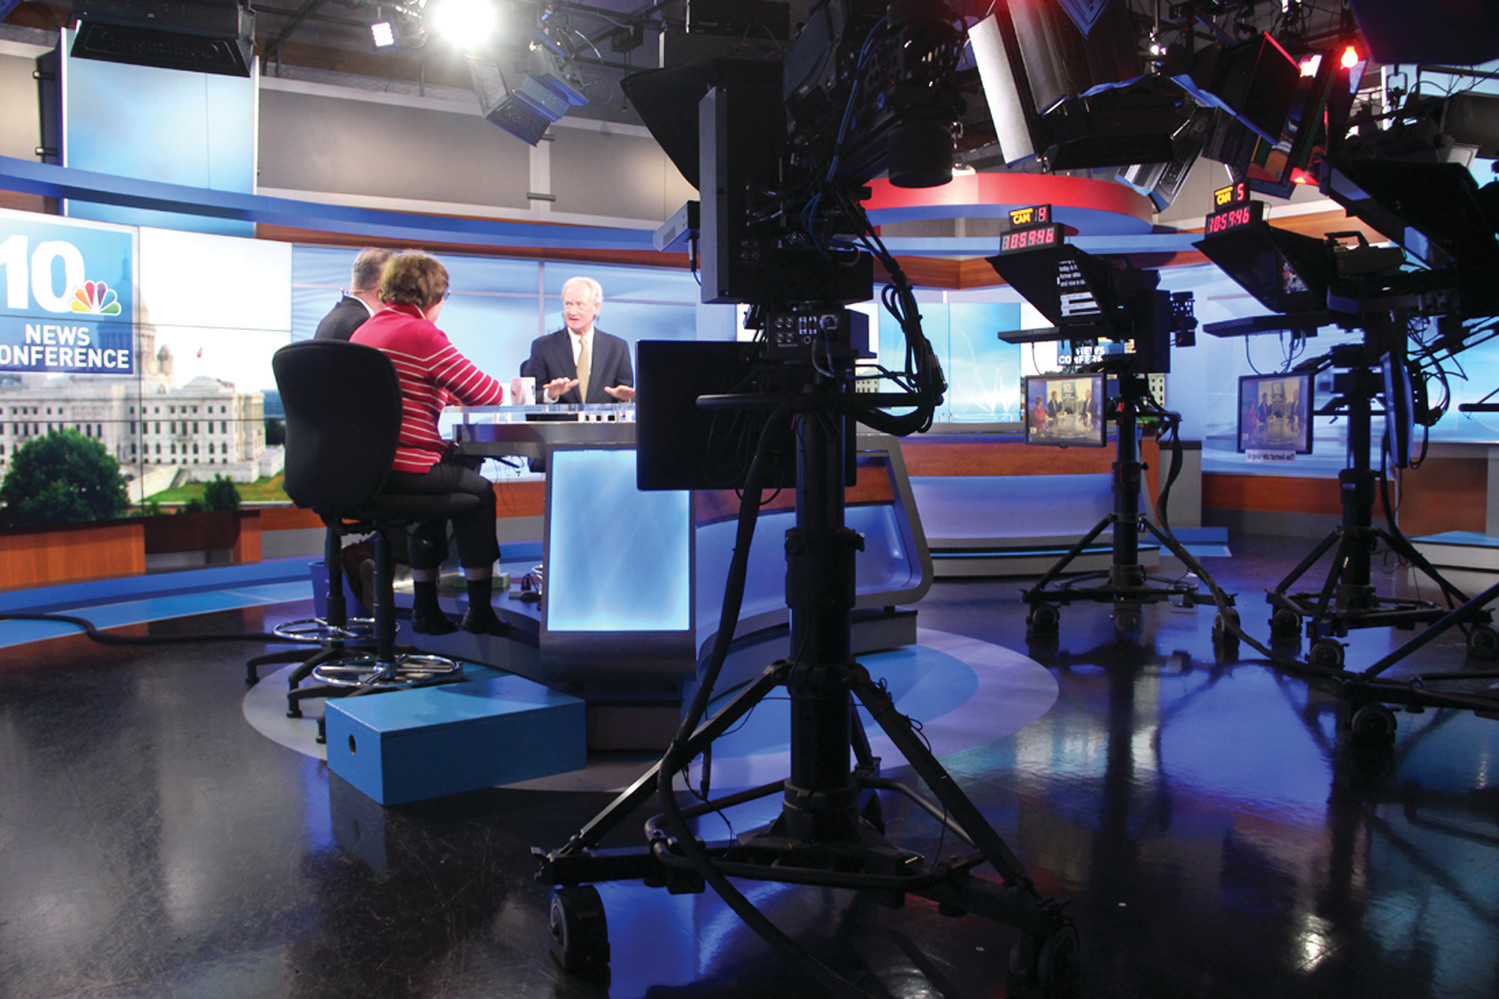 BACK ON THE SET: Former Senator, Governor and Democratic candidate for president Lincoln Chafee has all but officially announced he is looking to return to the U.S. Senate. He is seen here in the Channel 10 studio with political reporter Bill Rappleye and Arlene Violet during the taping of Sunday's 10 News Conference.